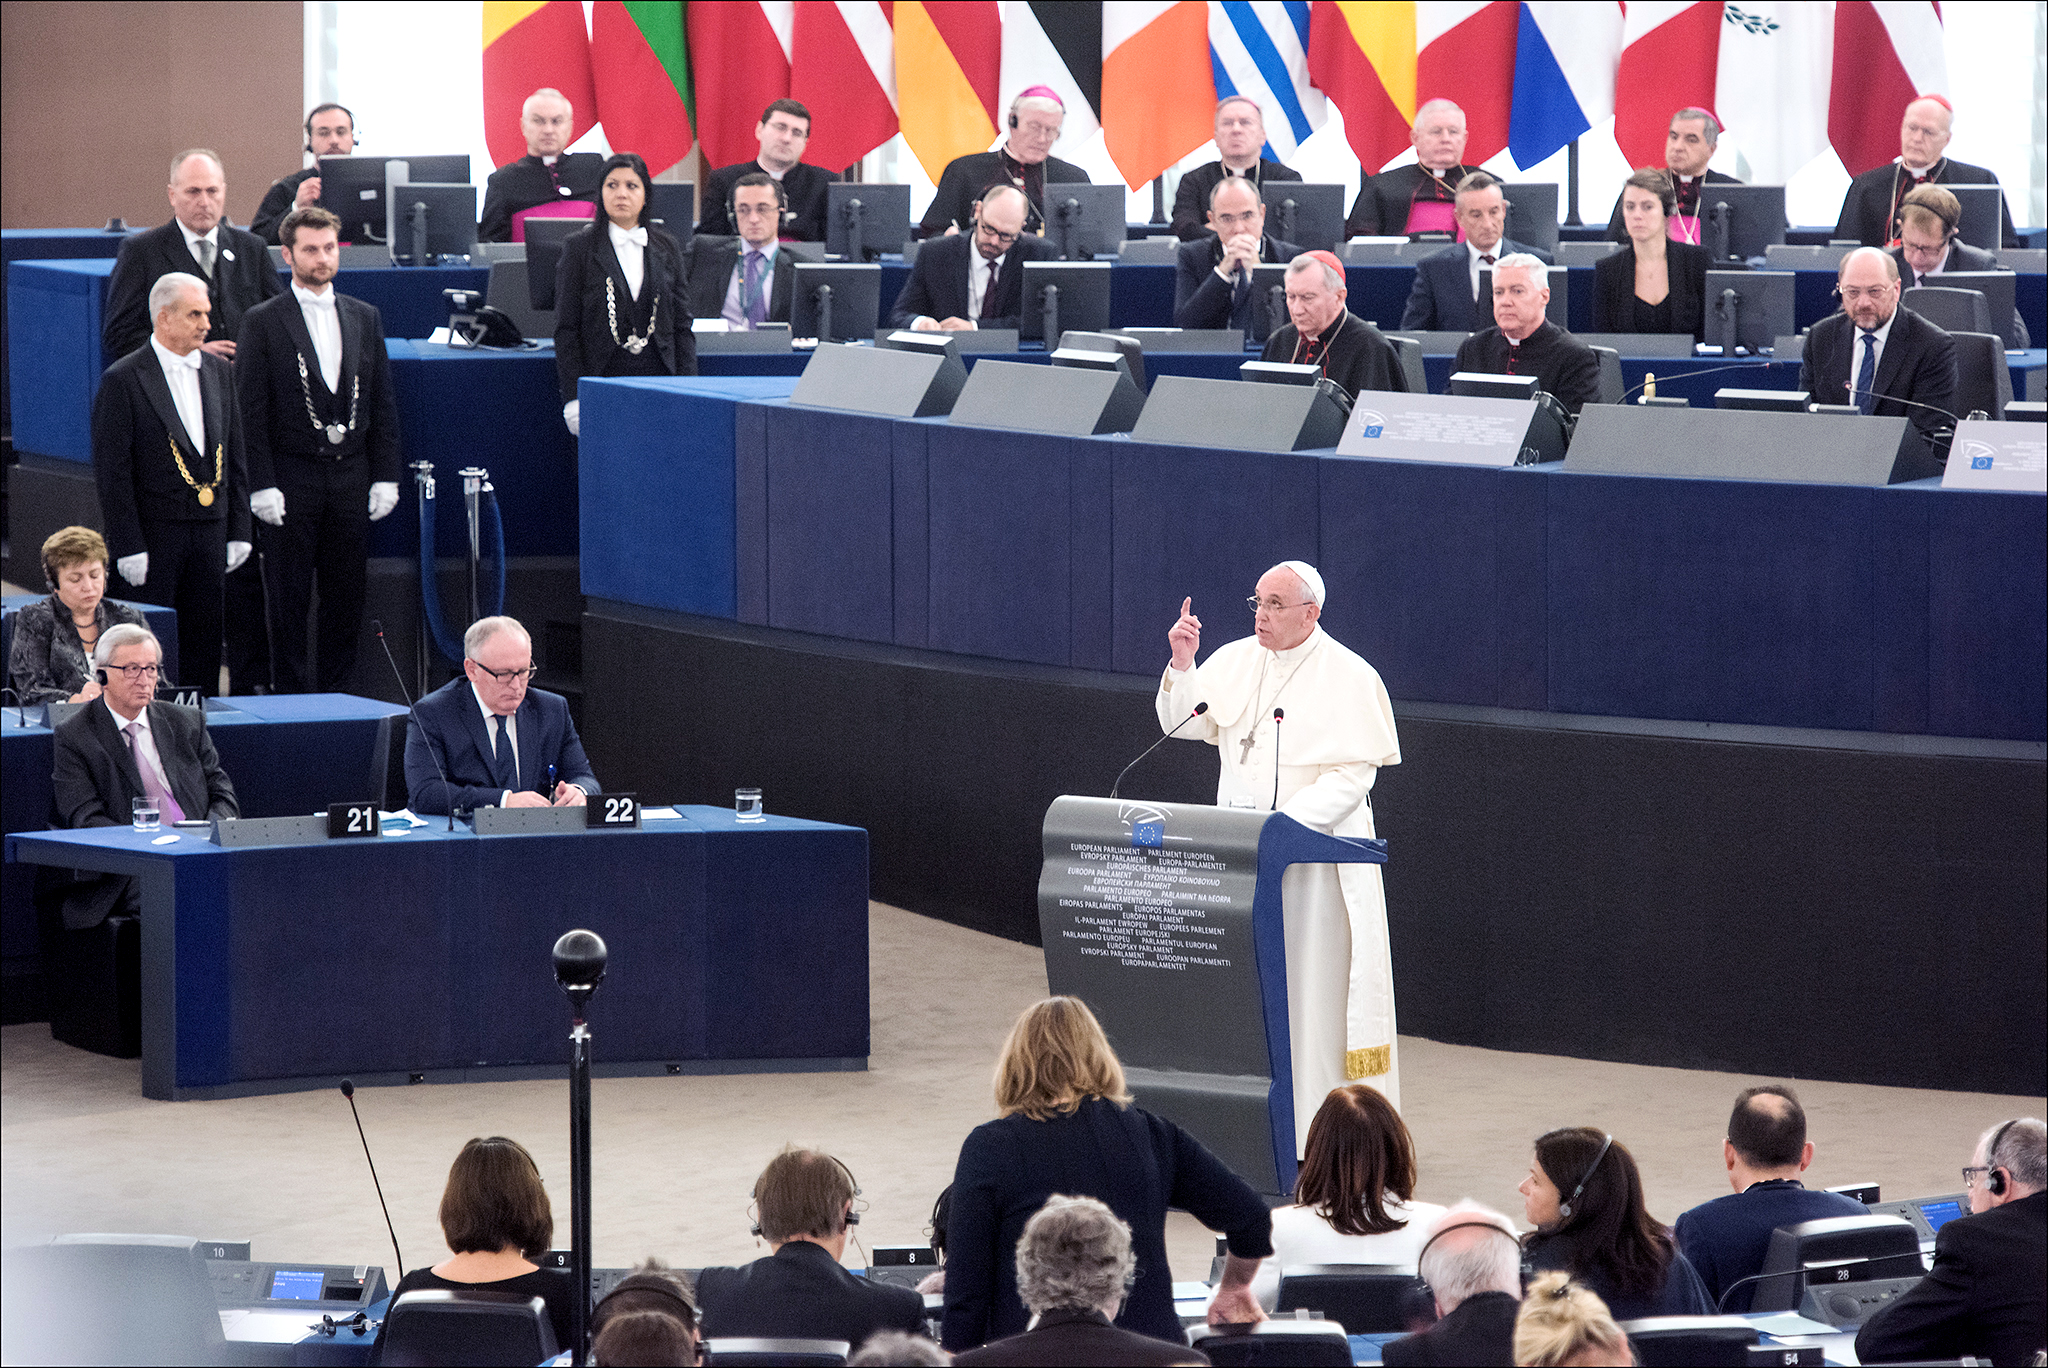 European Parliament timeline: from past to present